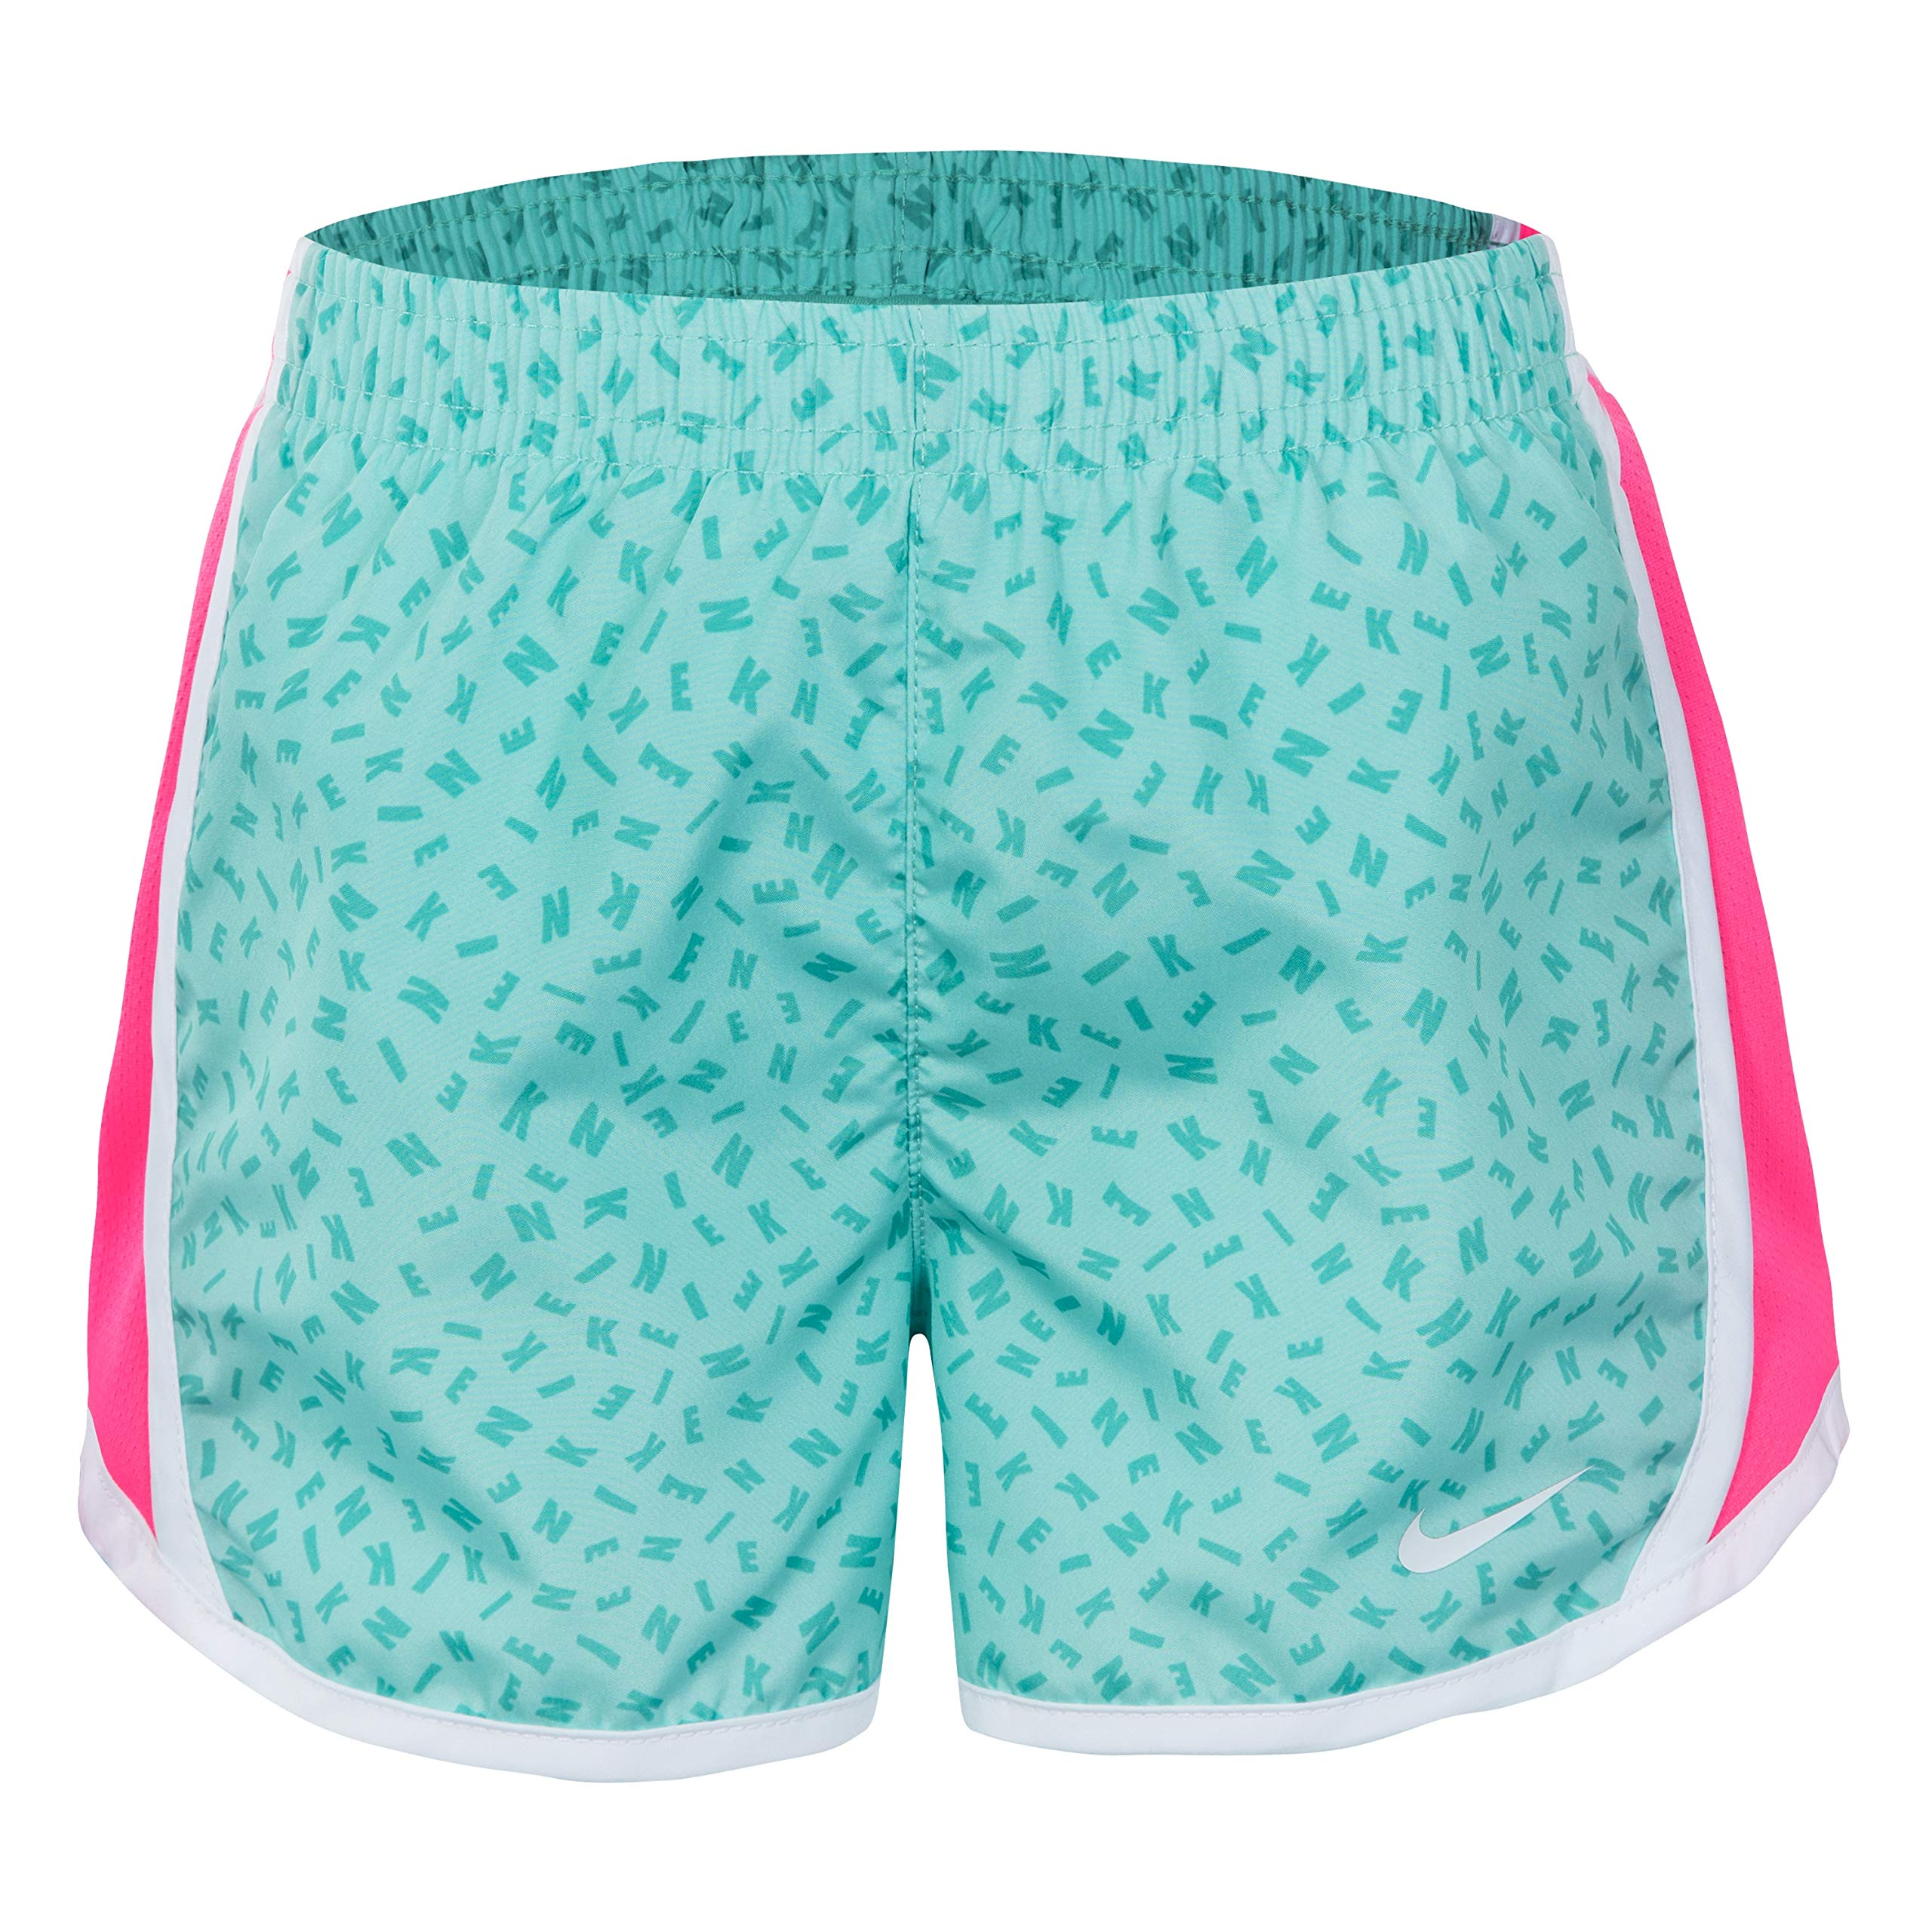 NIKE Children's Apparel Girls' Toddler Dri-FIT Tempo Shorts, Kinetic Green, 2T by NIKE Children's Apparel